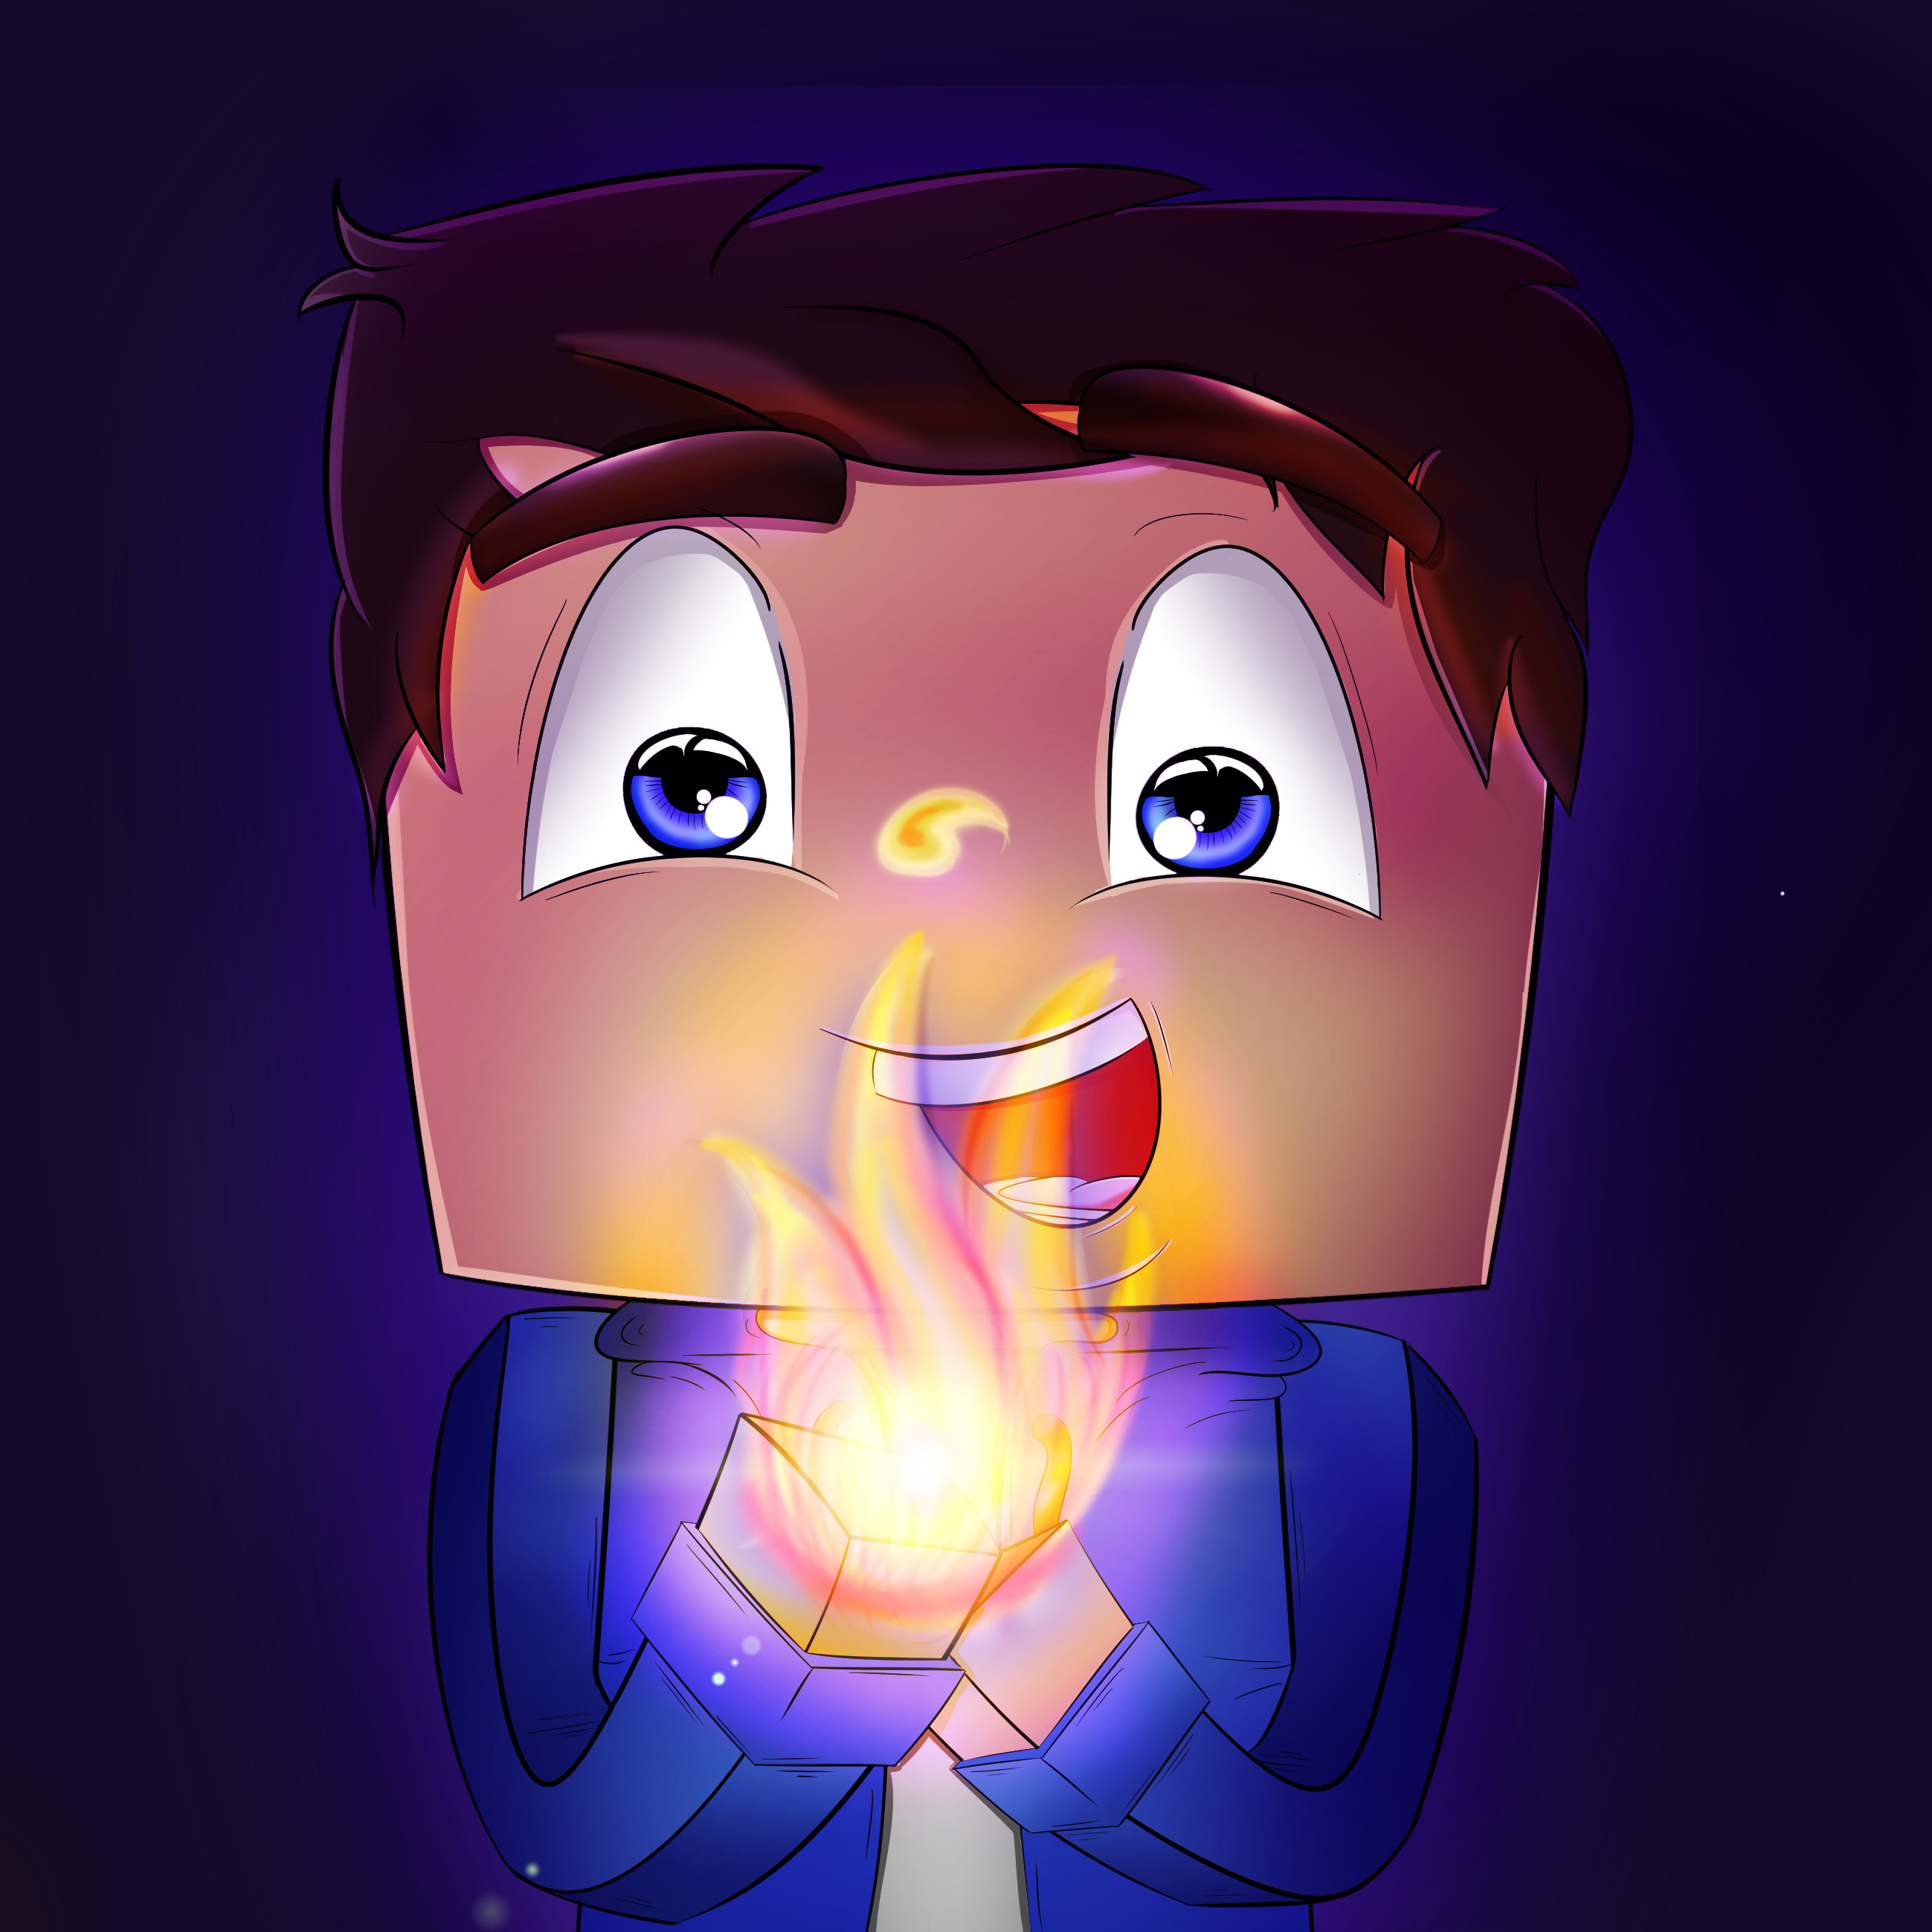 Thehypercraftt Avatar Minecraft Artwork By Pigpal2 On